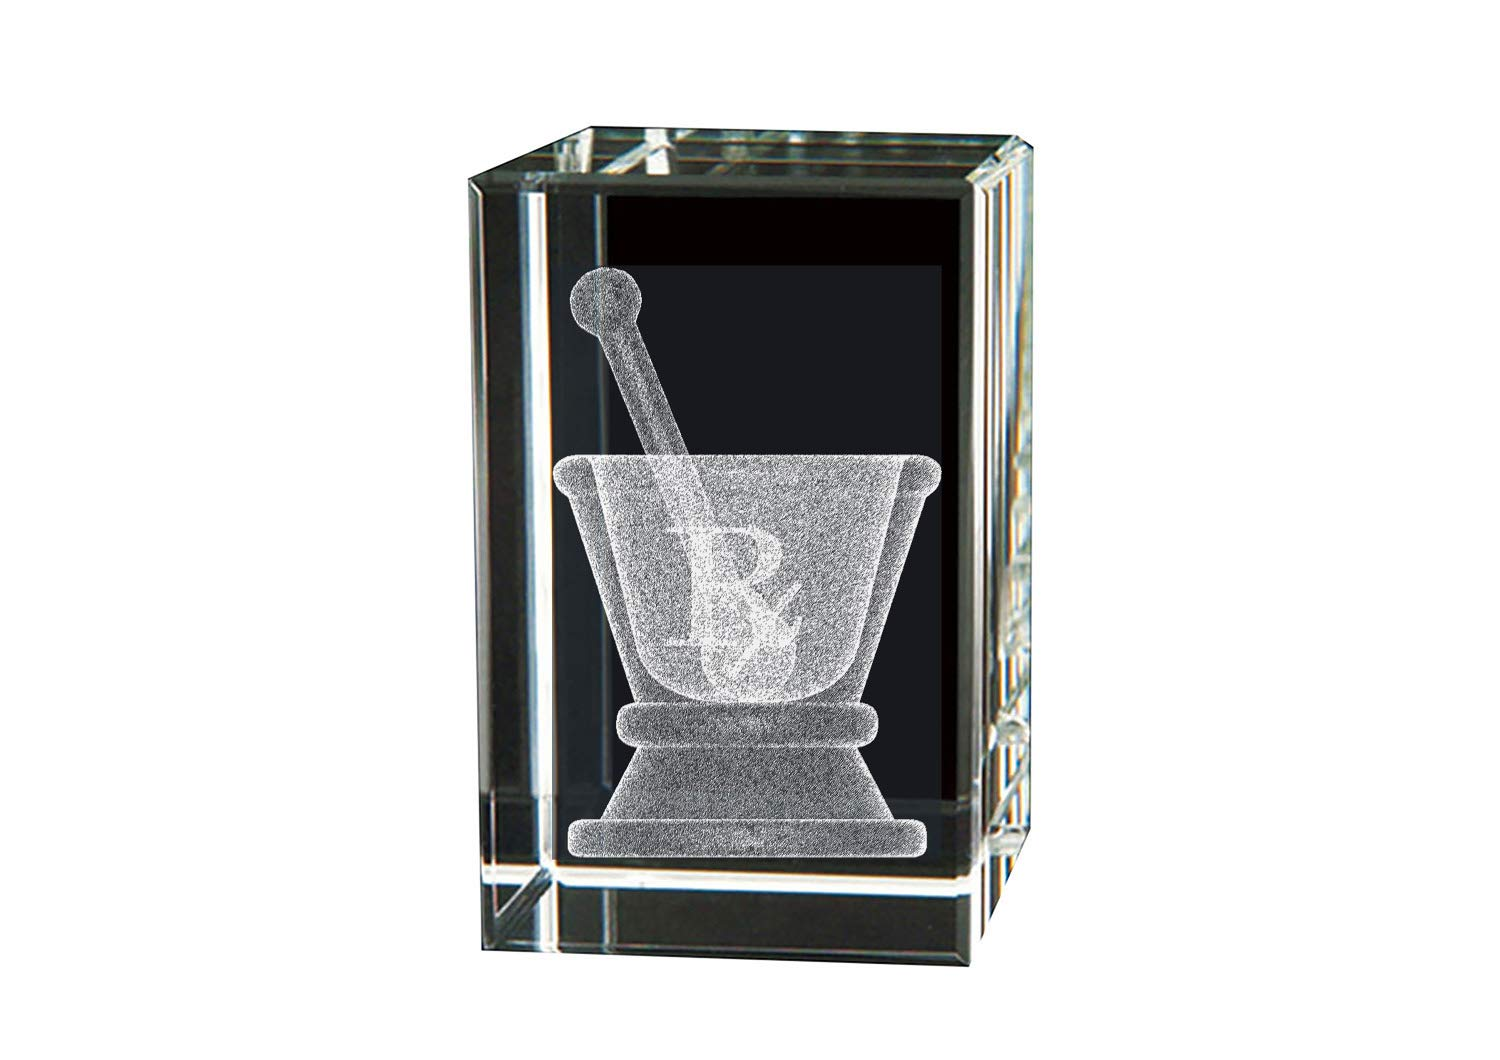 BIT Crystal Symbol of Pharmacy-Mortar and Pestle